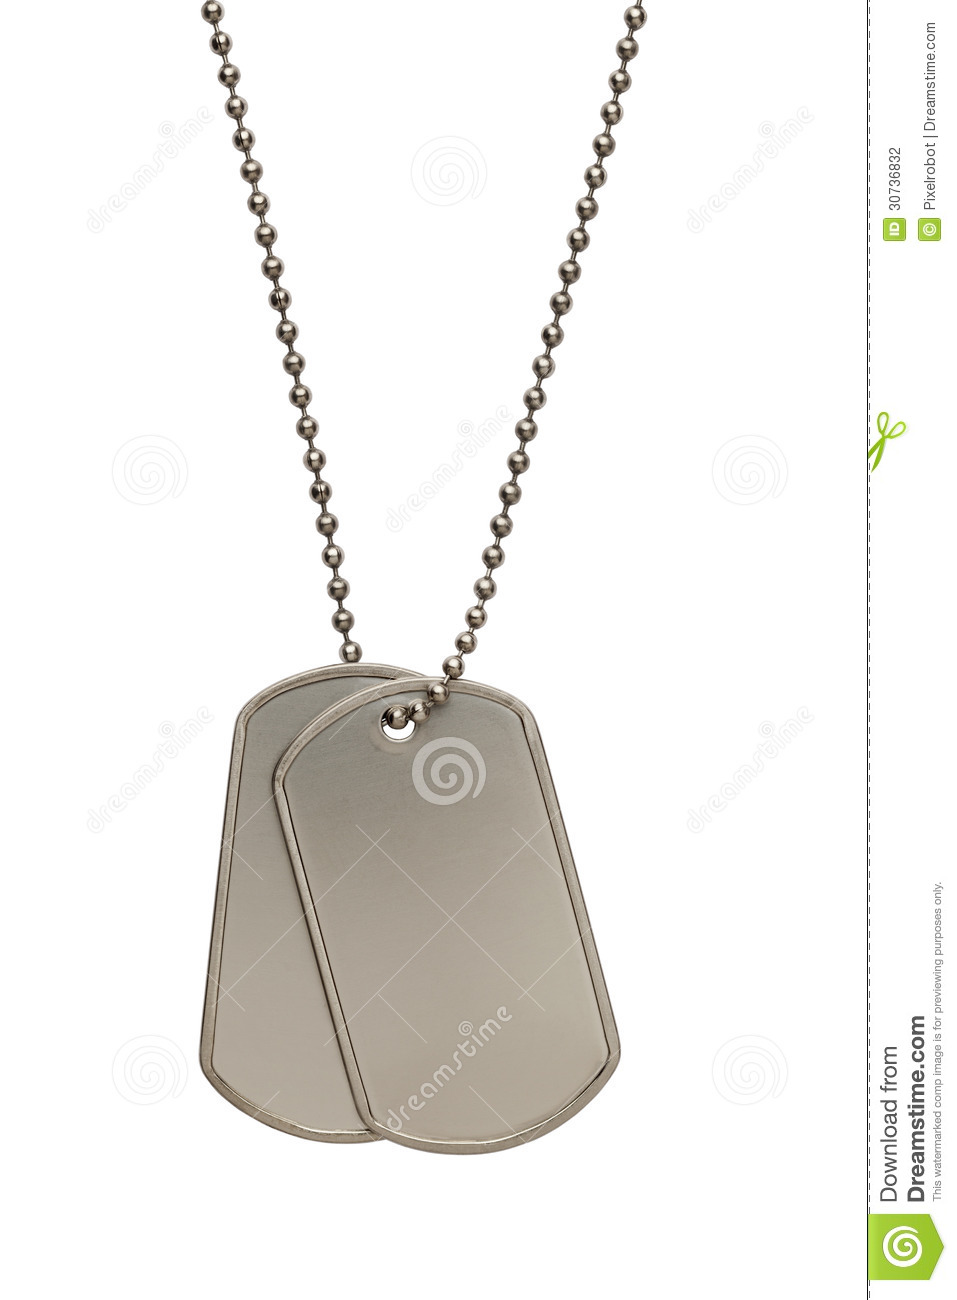 Military Dog Tags Stock Photography - Image: 30736832